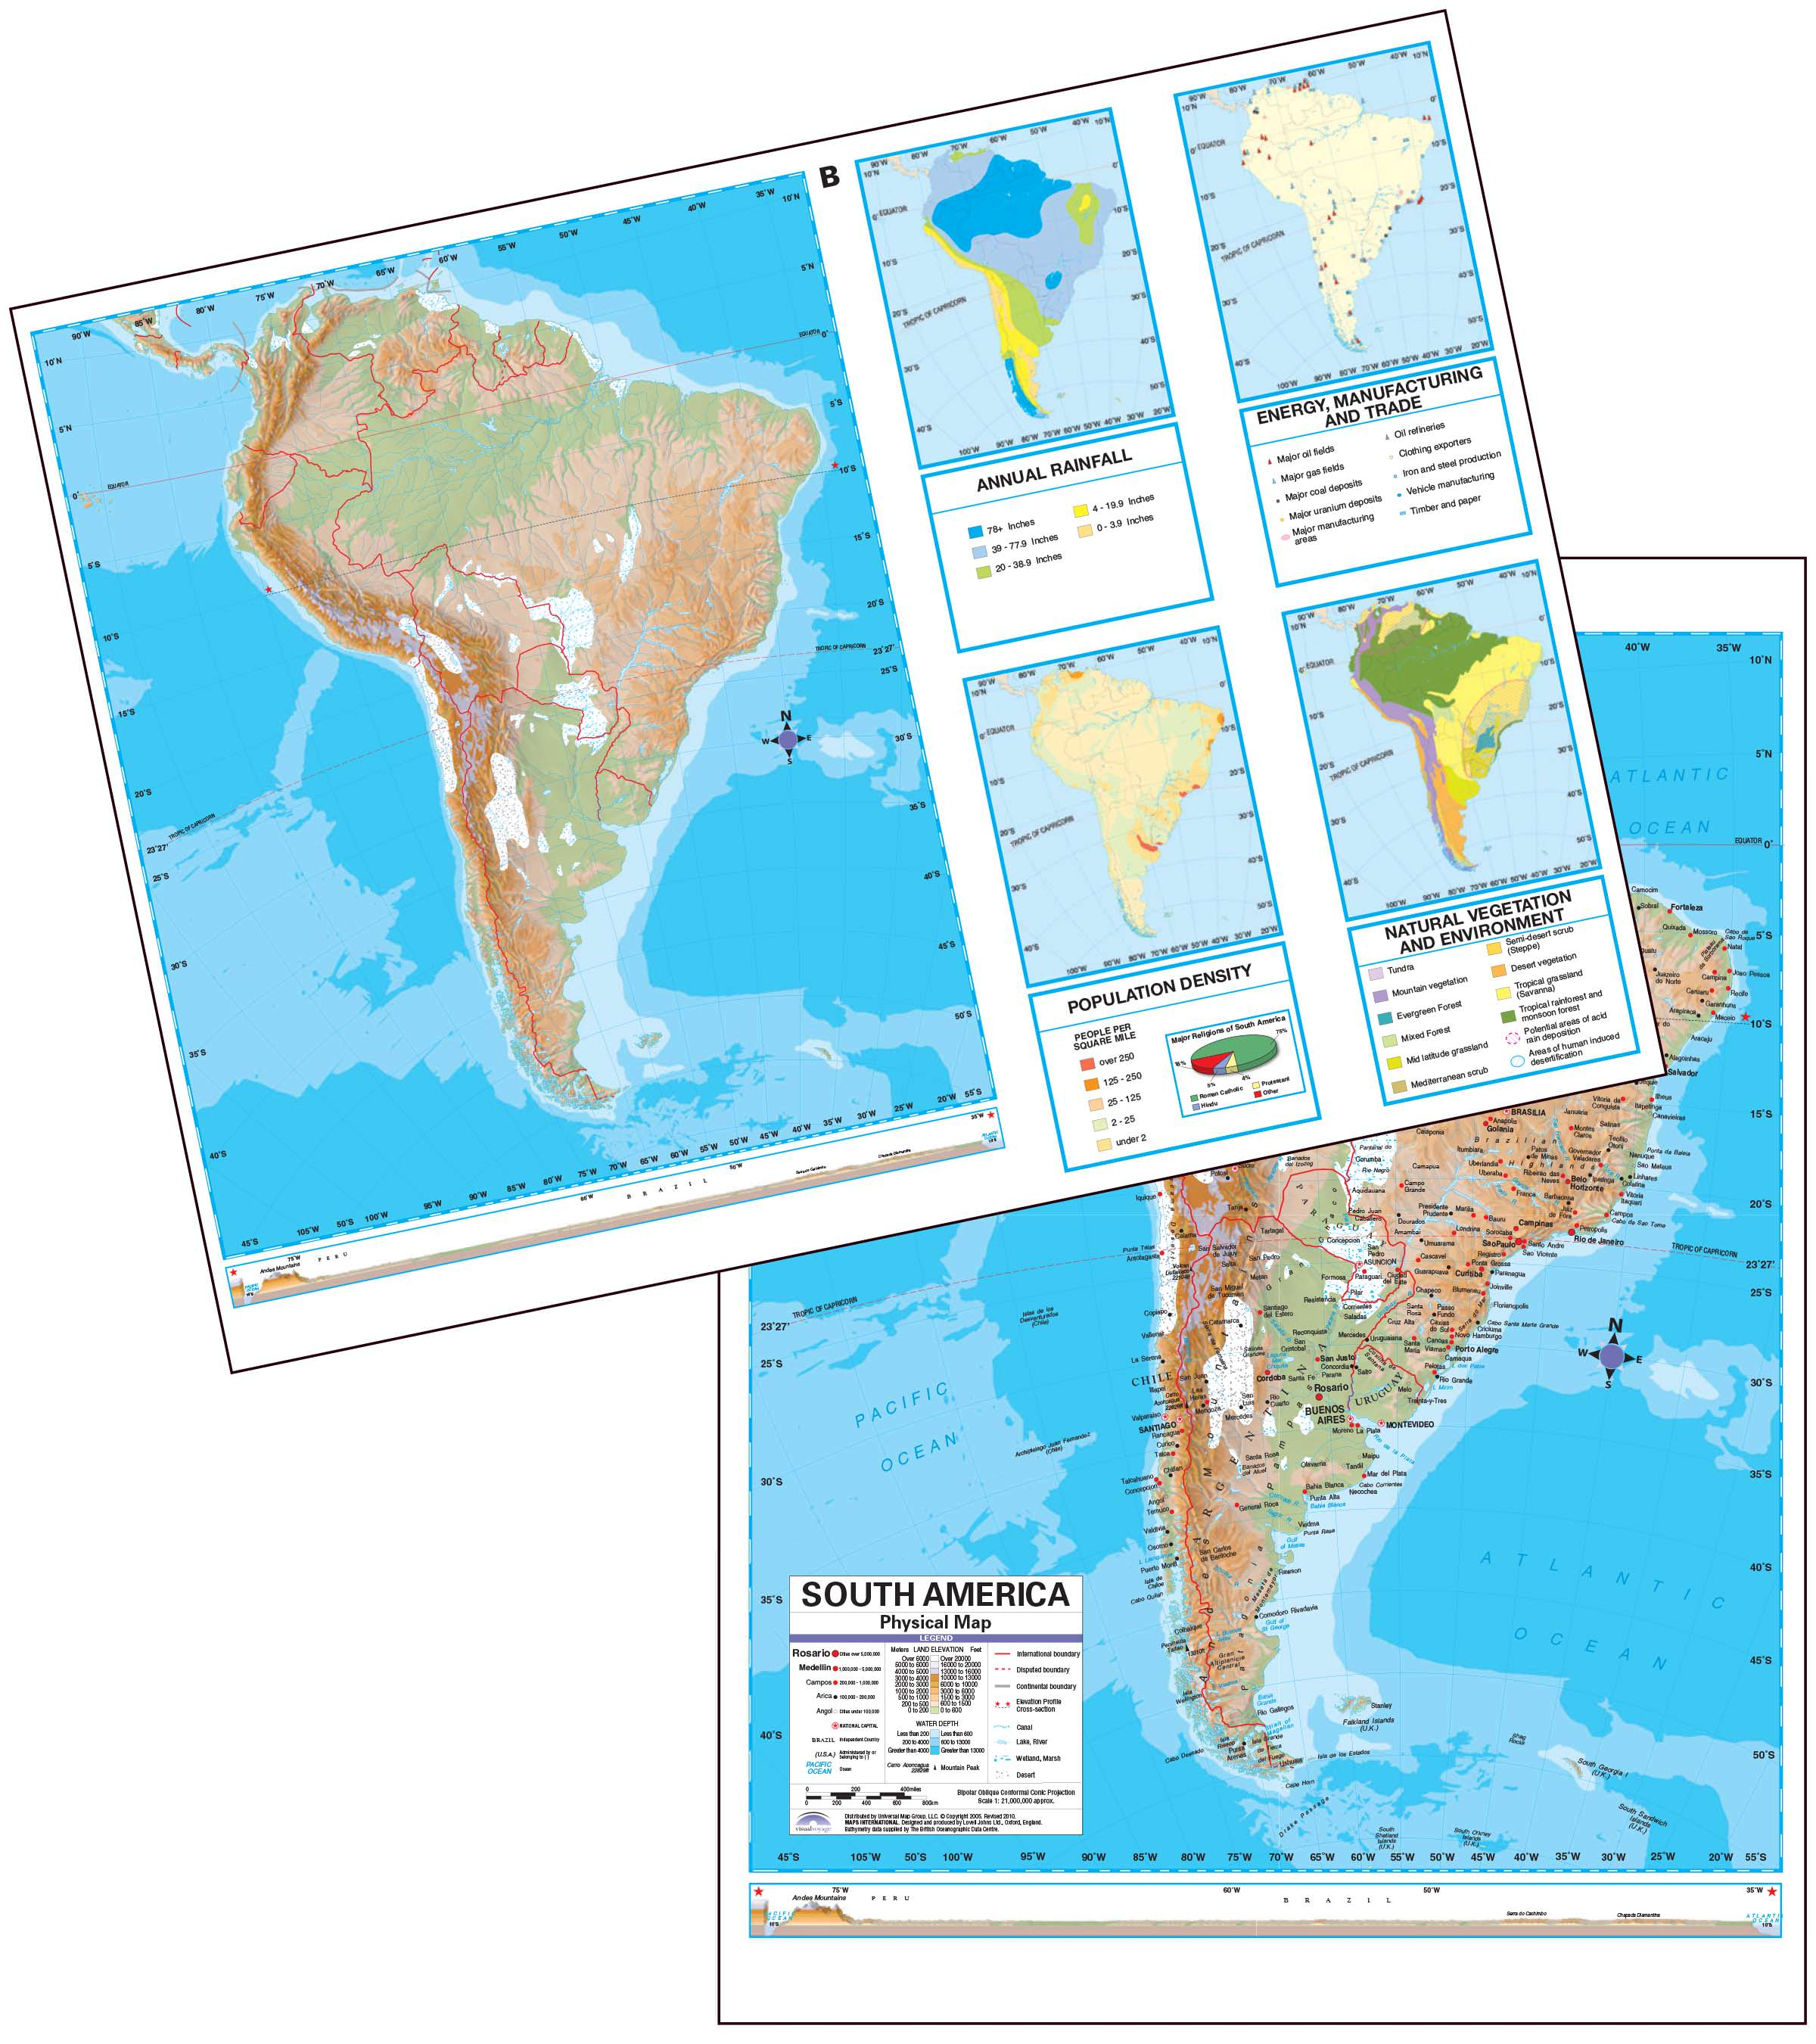 South America Advanced Physical Deskpad Map (multi-pack) – KAPPA on america state map, usa map, texas map, greece's map, europe map, latin america map, kenya's map, portugal's map, brazil's map, indonesia's map, south america map, central america map, canada map, world map, mexico map, africa map, jamaica's map, asia map, c america map, north america map,